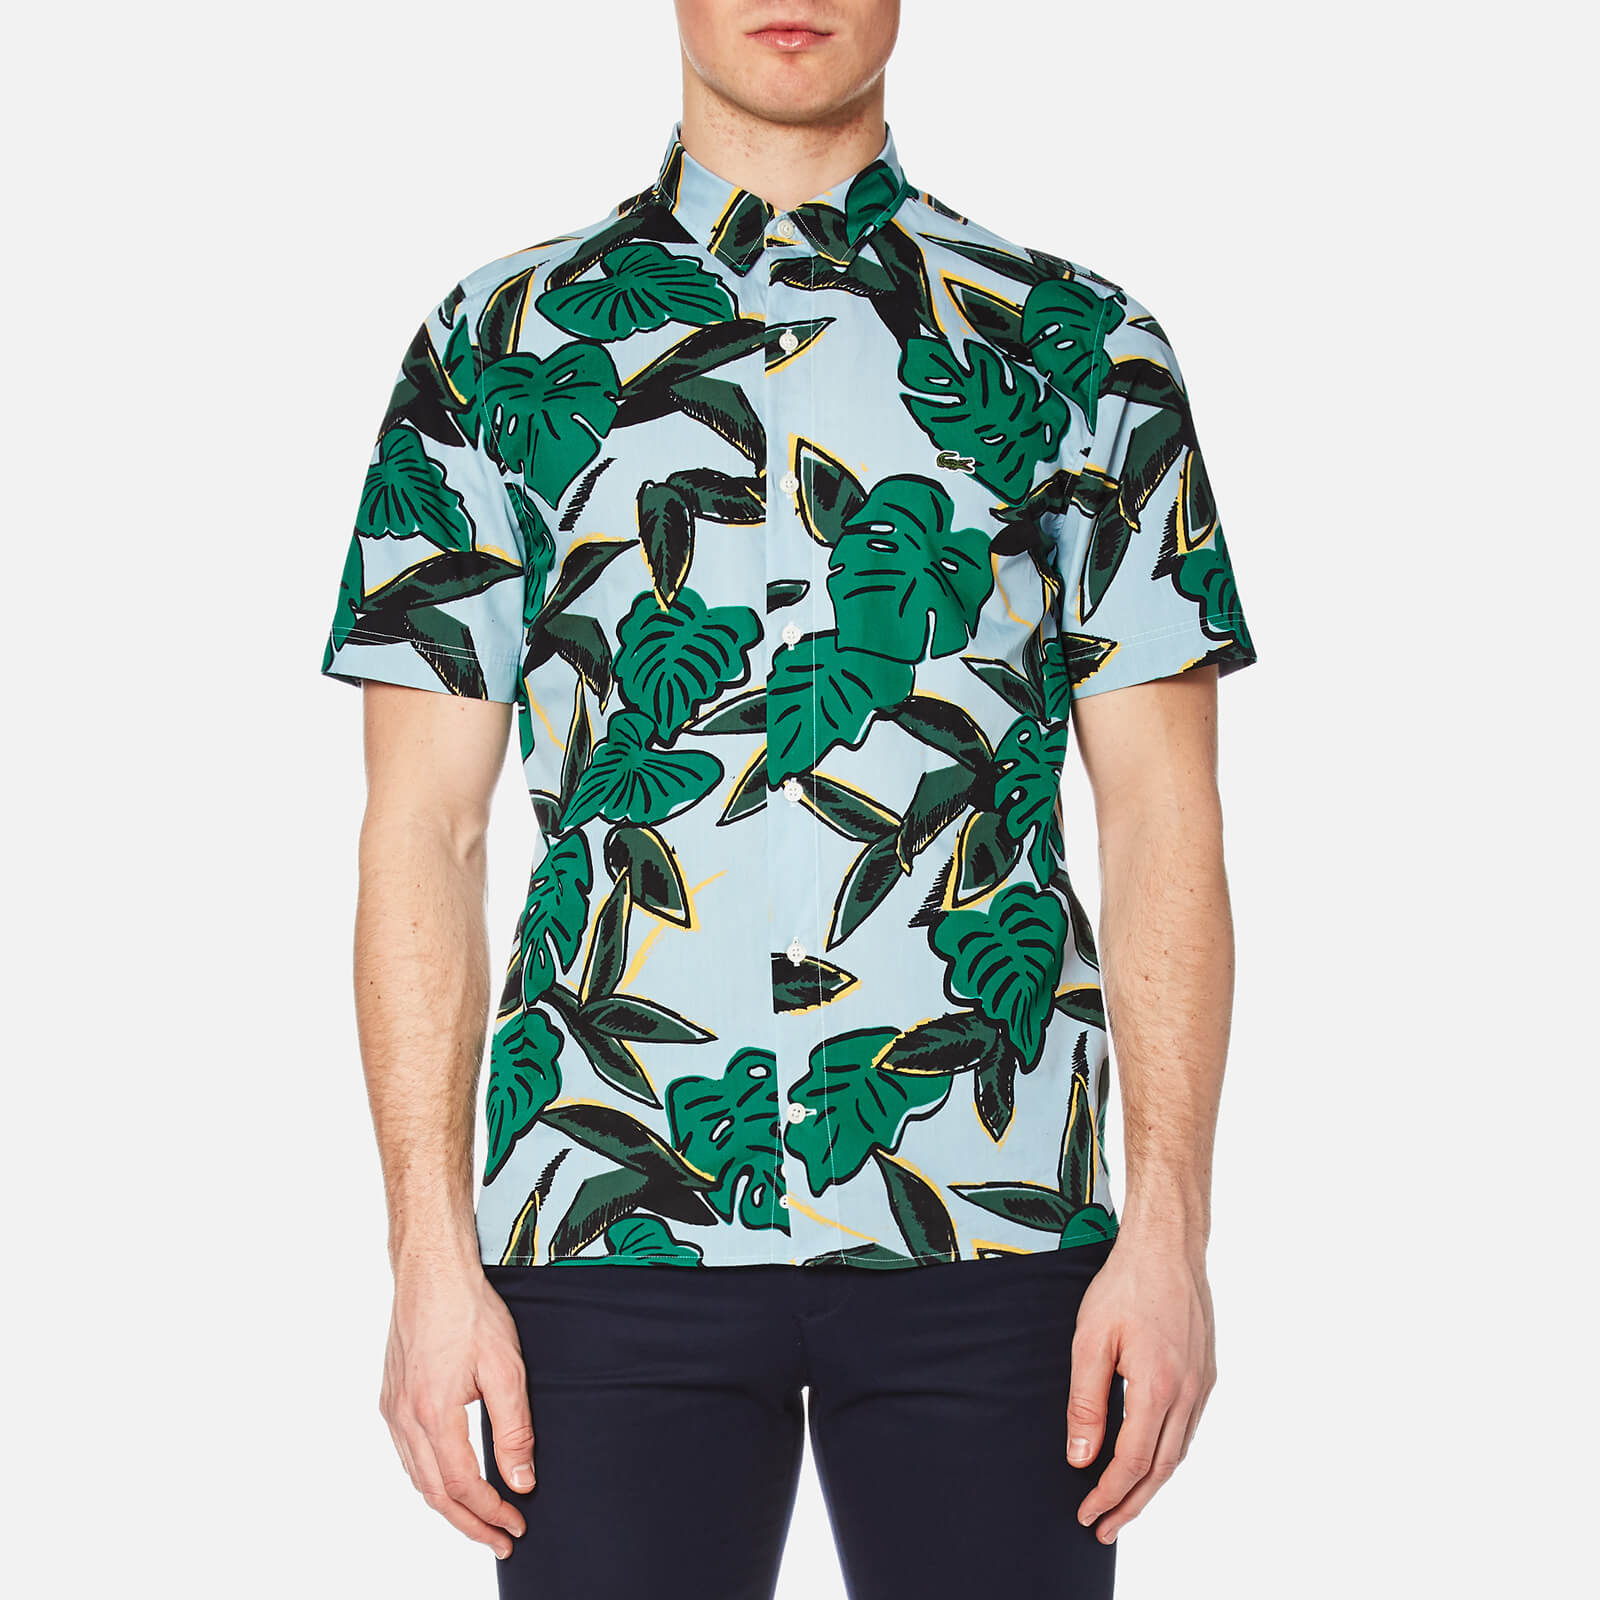 506ec61c Lacoste L!ve Men's Graphic Print Short Sleeve Shirt - Breeze/Multi